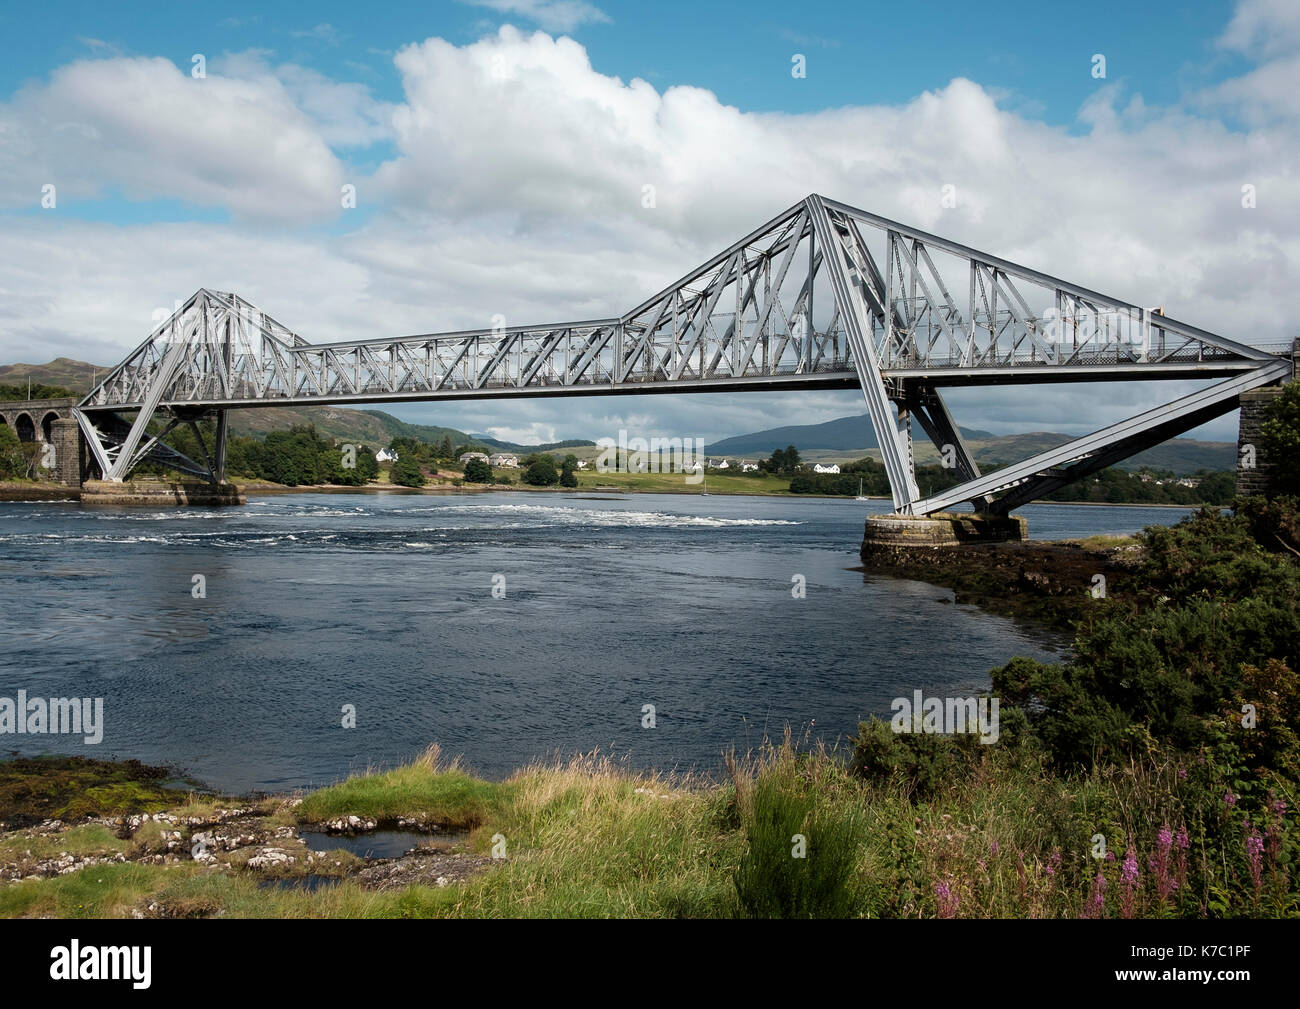 The steel cantilever bridge at Connel carrying the A828  over the entrance to Loch Etive above the Falls of Lora, Argyll and Bute, Scotland - Stock Image